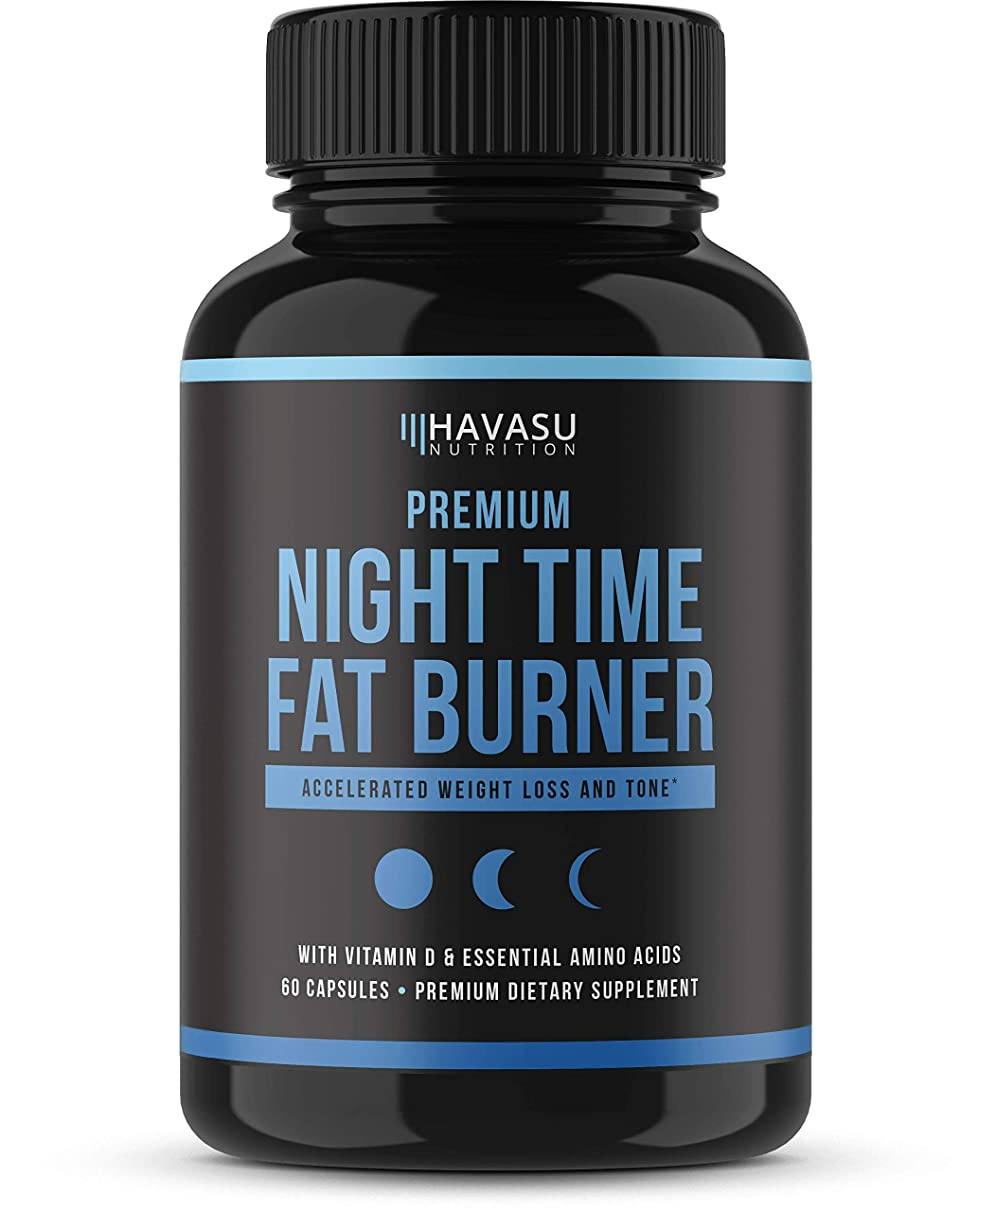 Night Time Weight Loss Pills with Premium Vitamin D, Green Coffee Bean Extract, White Kidney Bean Extract, L-Theanine, L-Tryptophan, Melatonin- Non Habit Forming PM Fat Burner & Metabolism Booster